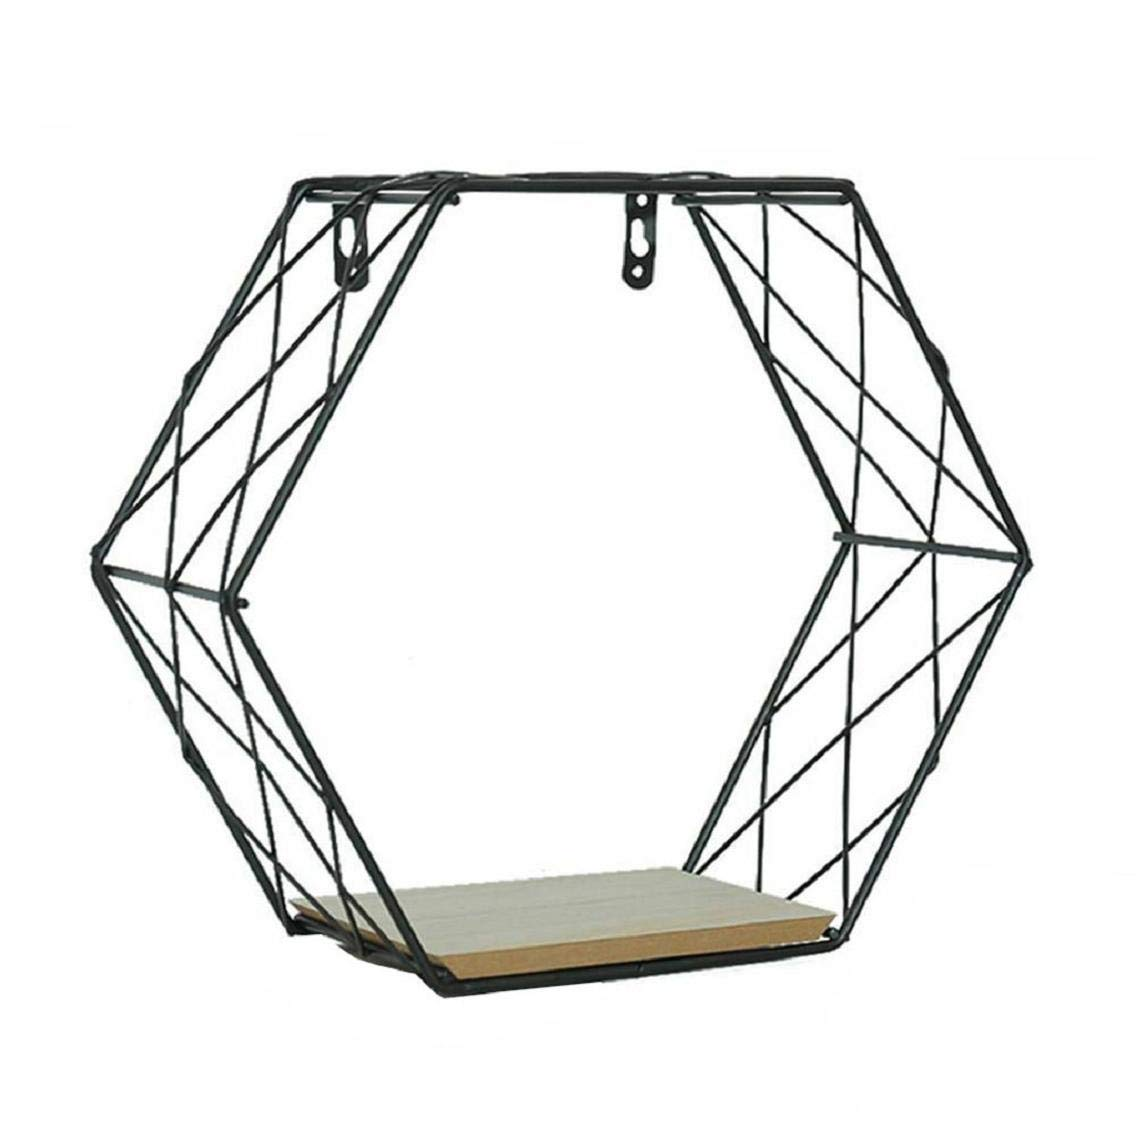 Boddenly Metal Wire Hexagon Design Wall-Mounted Shelves, Floating Hexagon Shelves, Wall-Mounted Geometric Metal Wall Decor Hexagon Floating Display Racks Magazine Rack Record Holder